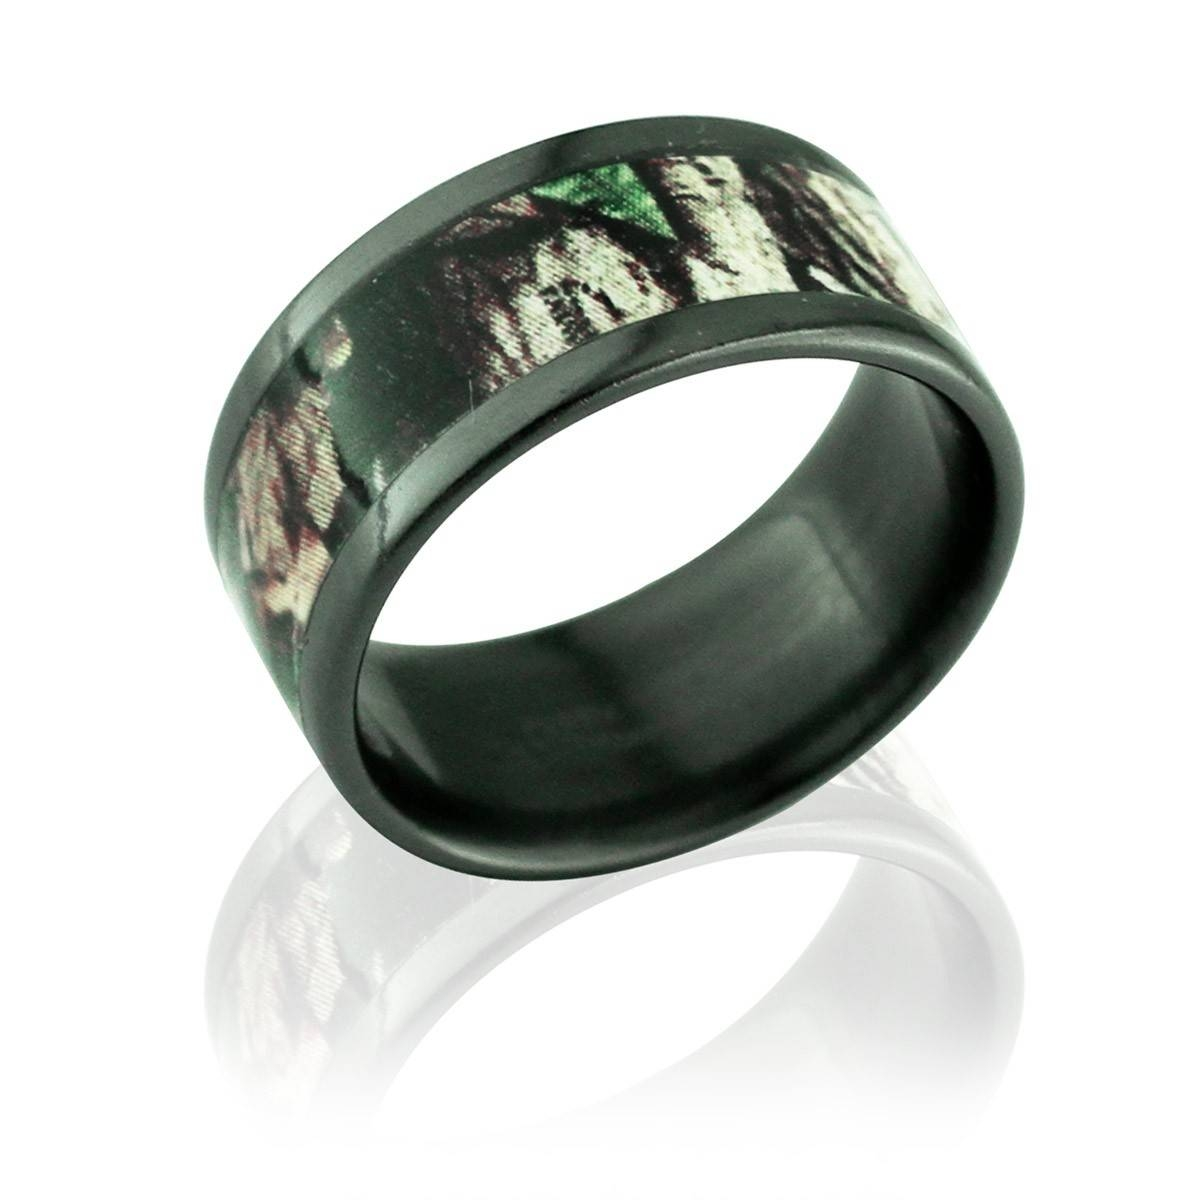 45 Camo Wedding Ring Sets For Him And Her, Camo Wedding Ring Set For Camouflage Wedding Bands For Him (View 1 of 15)